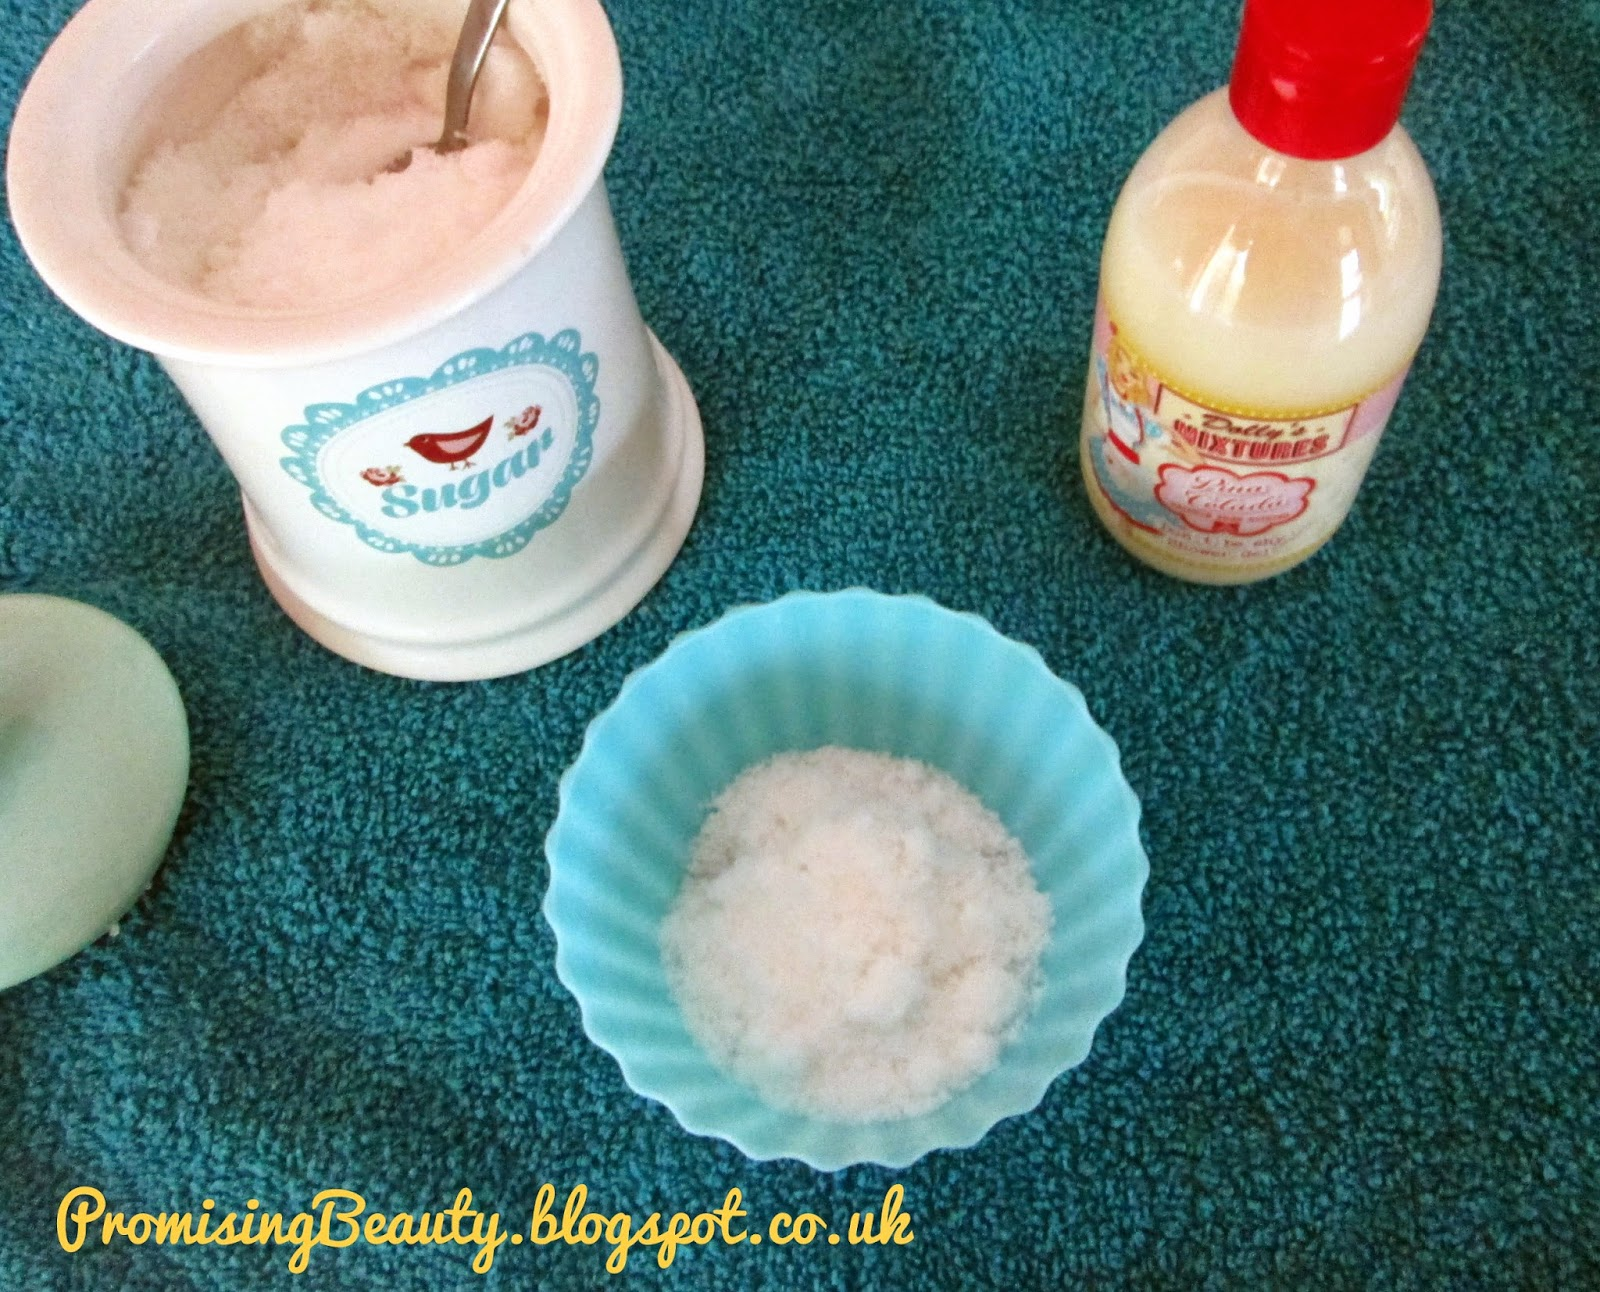 DIY beauty treatment, Body scrub, Dollys Mixtures shower gel bubble bath in Pina Colada and sugar